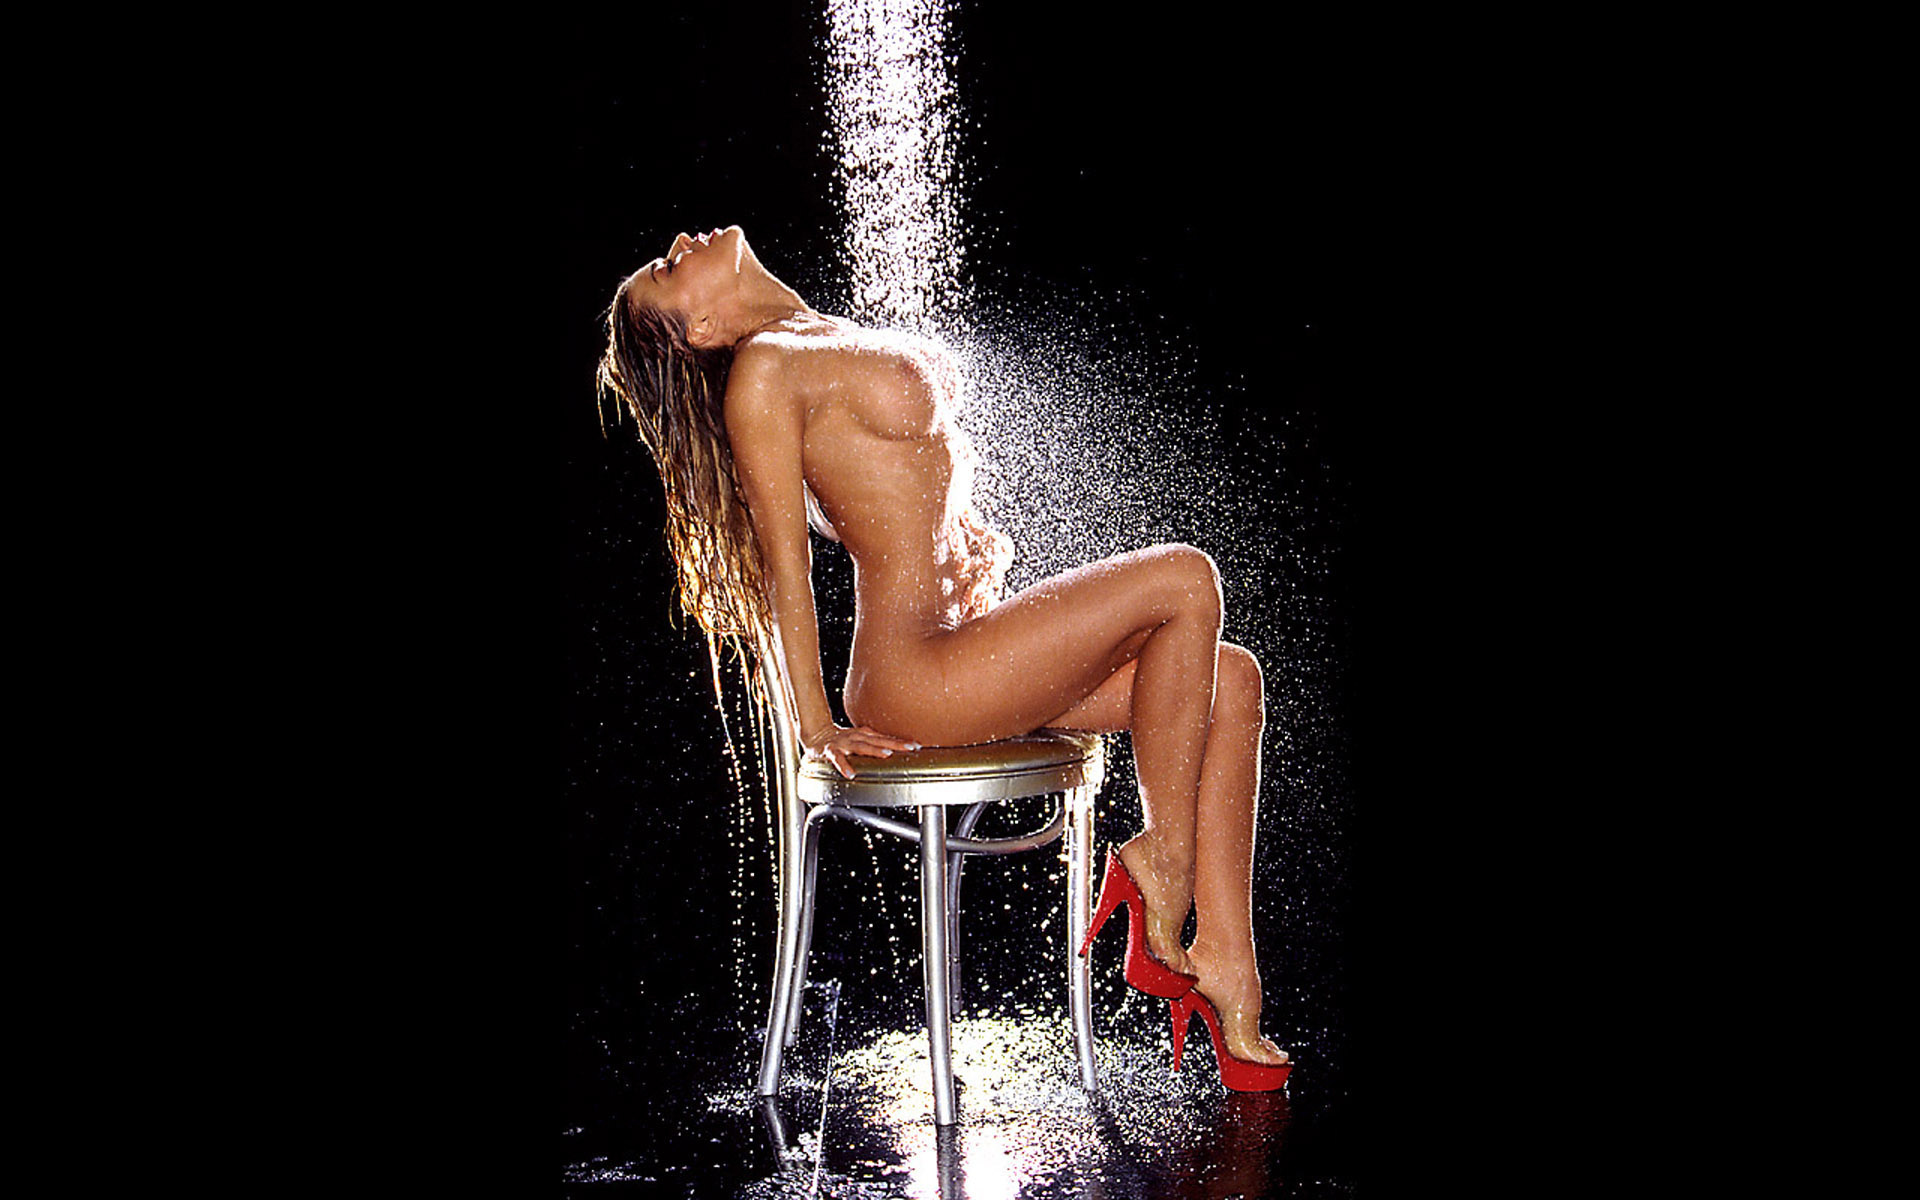 Carmen electra naked wallpaper topic apologise